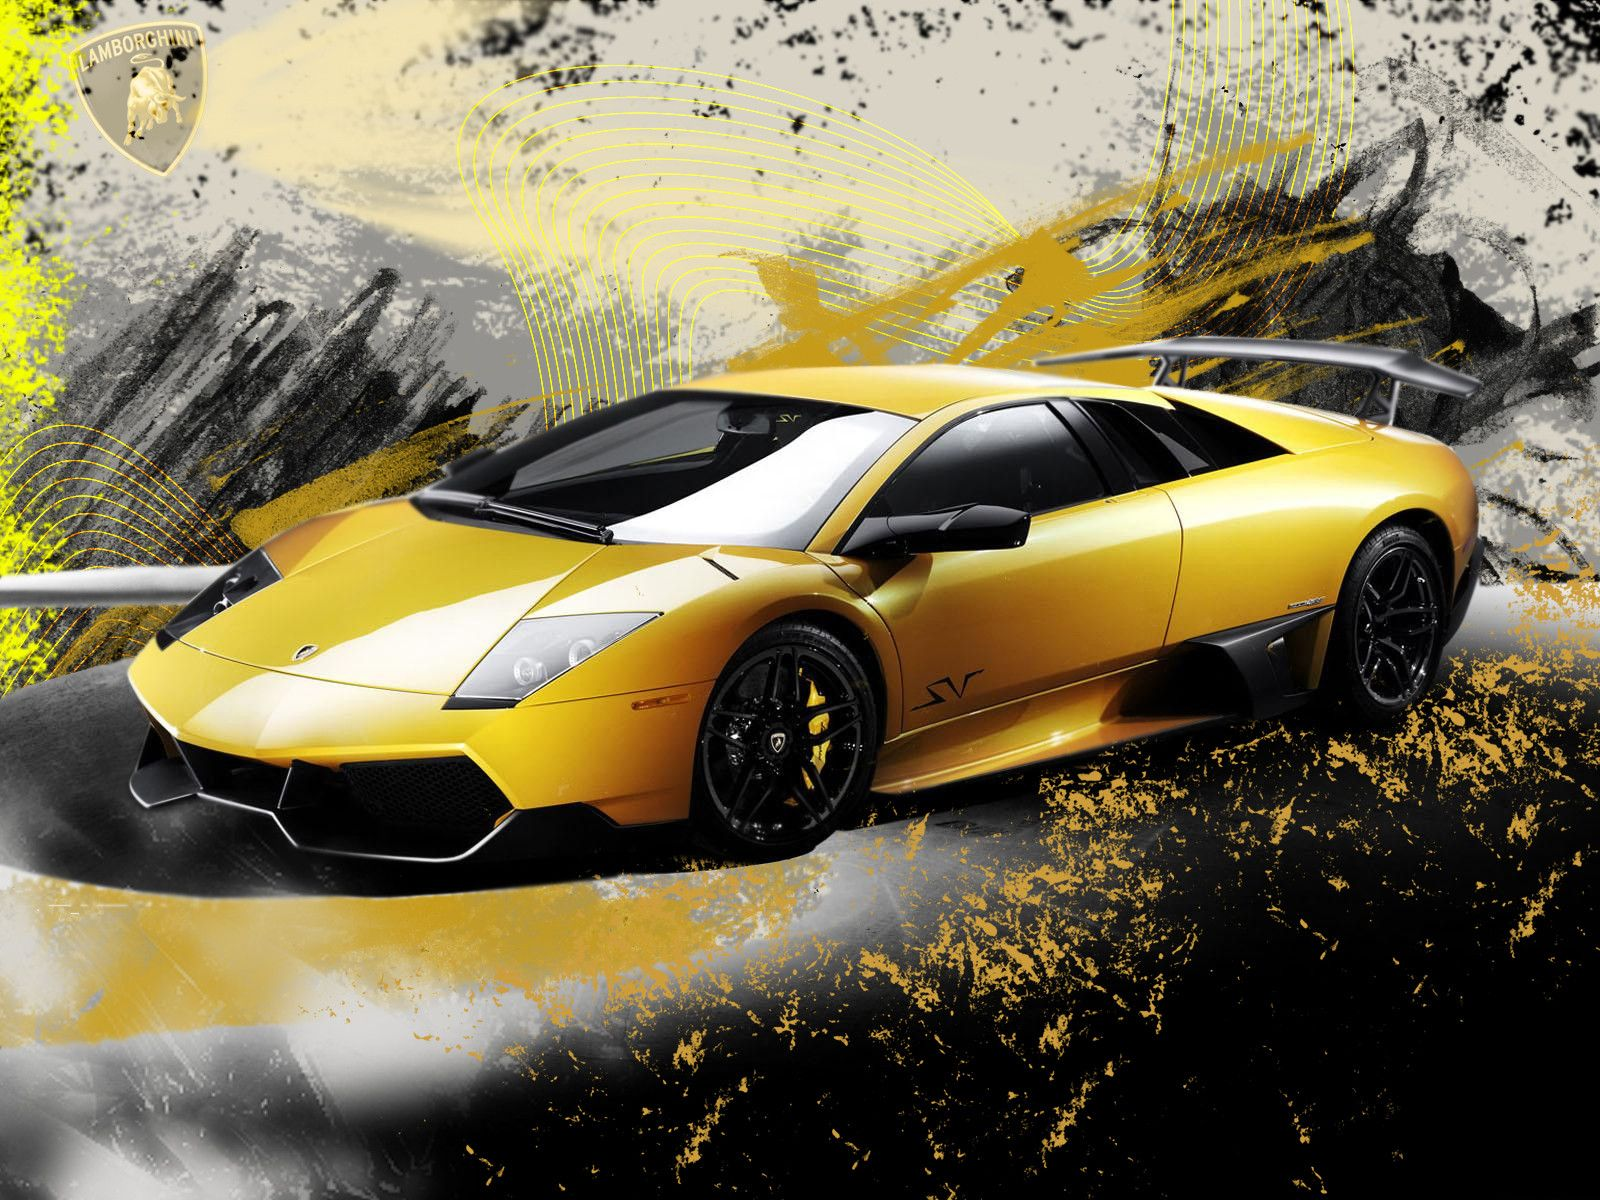 Awesome Car Backgrounds Png Free Awesome Car Backgrounds Png Transparent Images 52602 Pngio